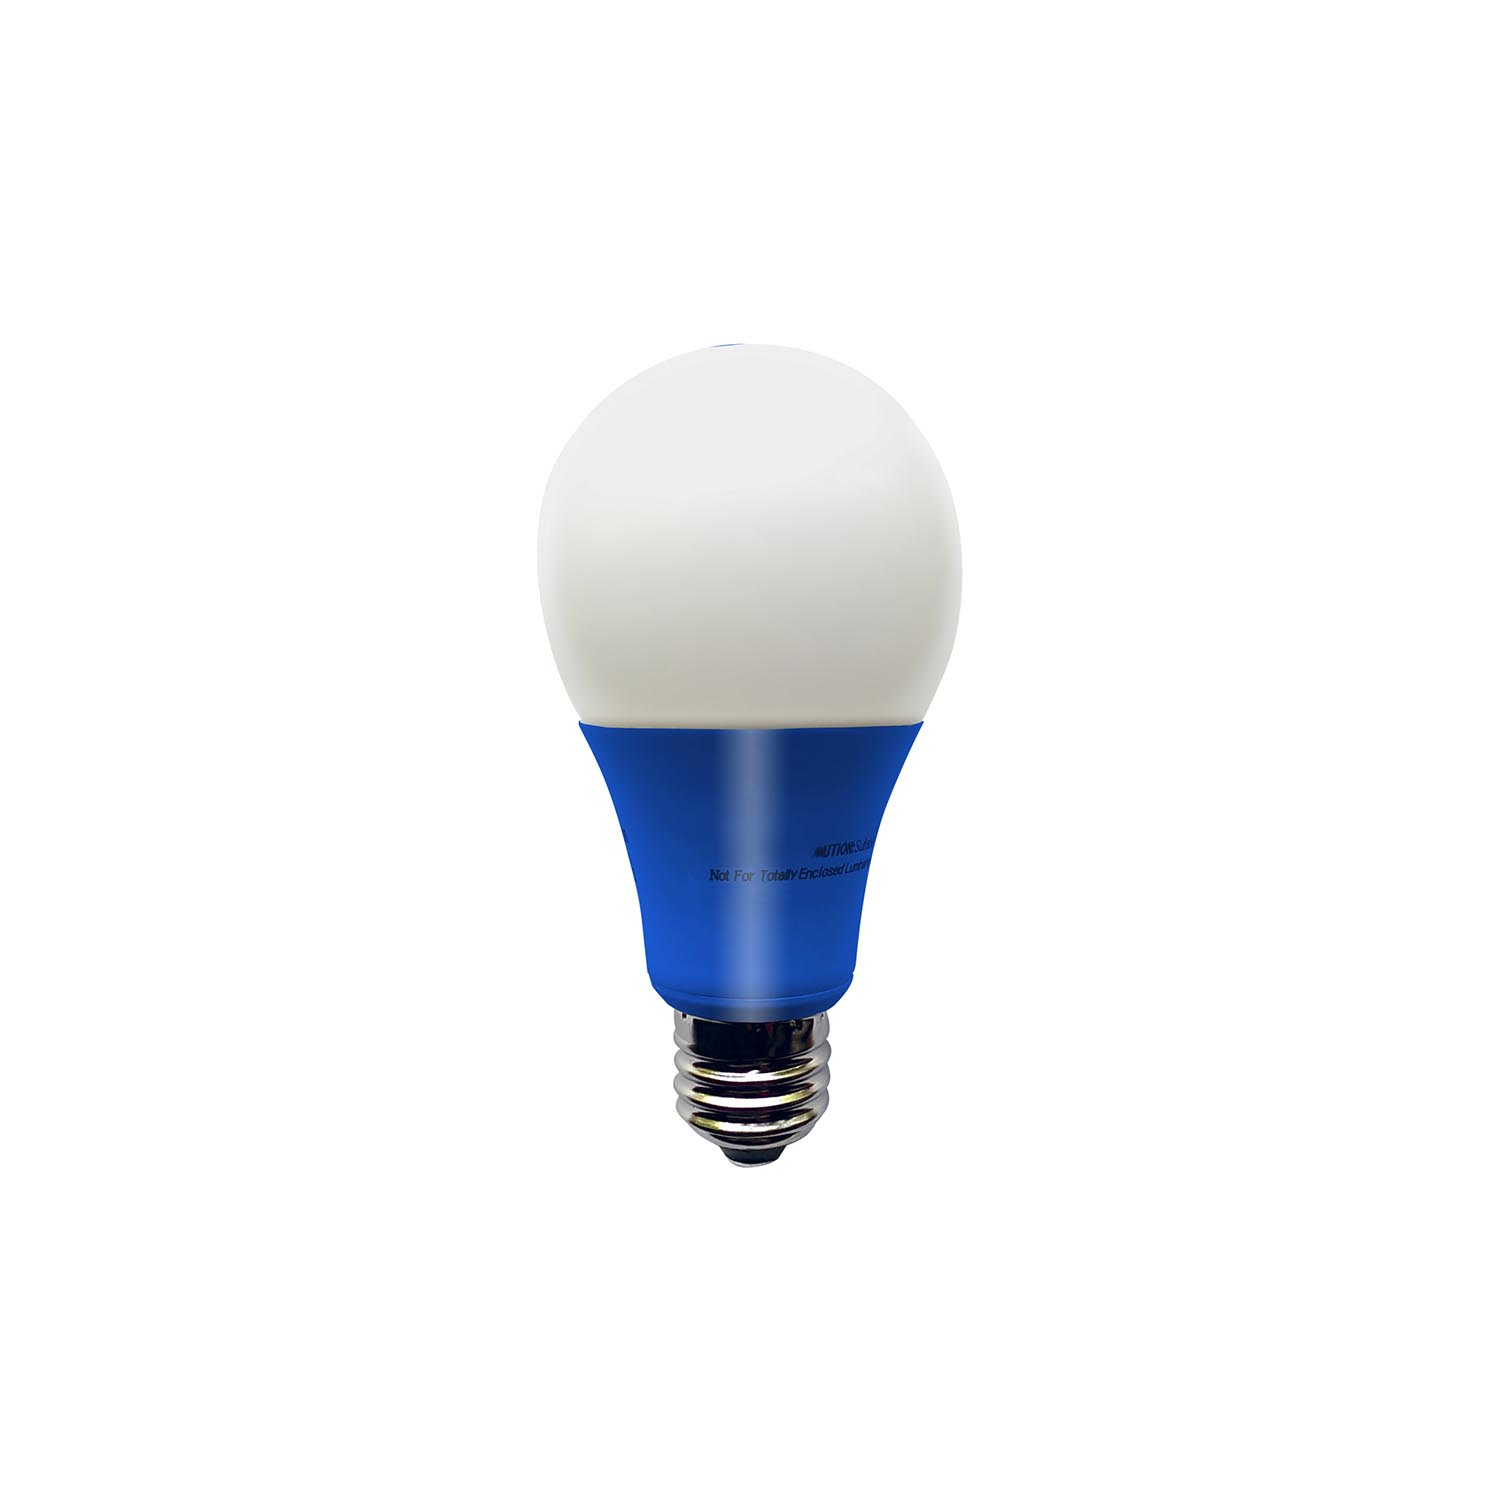 illumin8 i8a deco blue a19 led light bulb non dimmable 4 5 watt great brands outlet. Black Bedroom Furniture Sets. Home Design Ideas